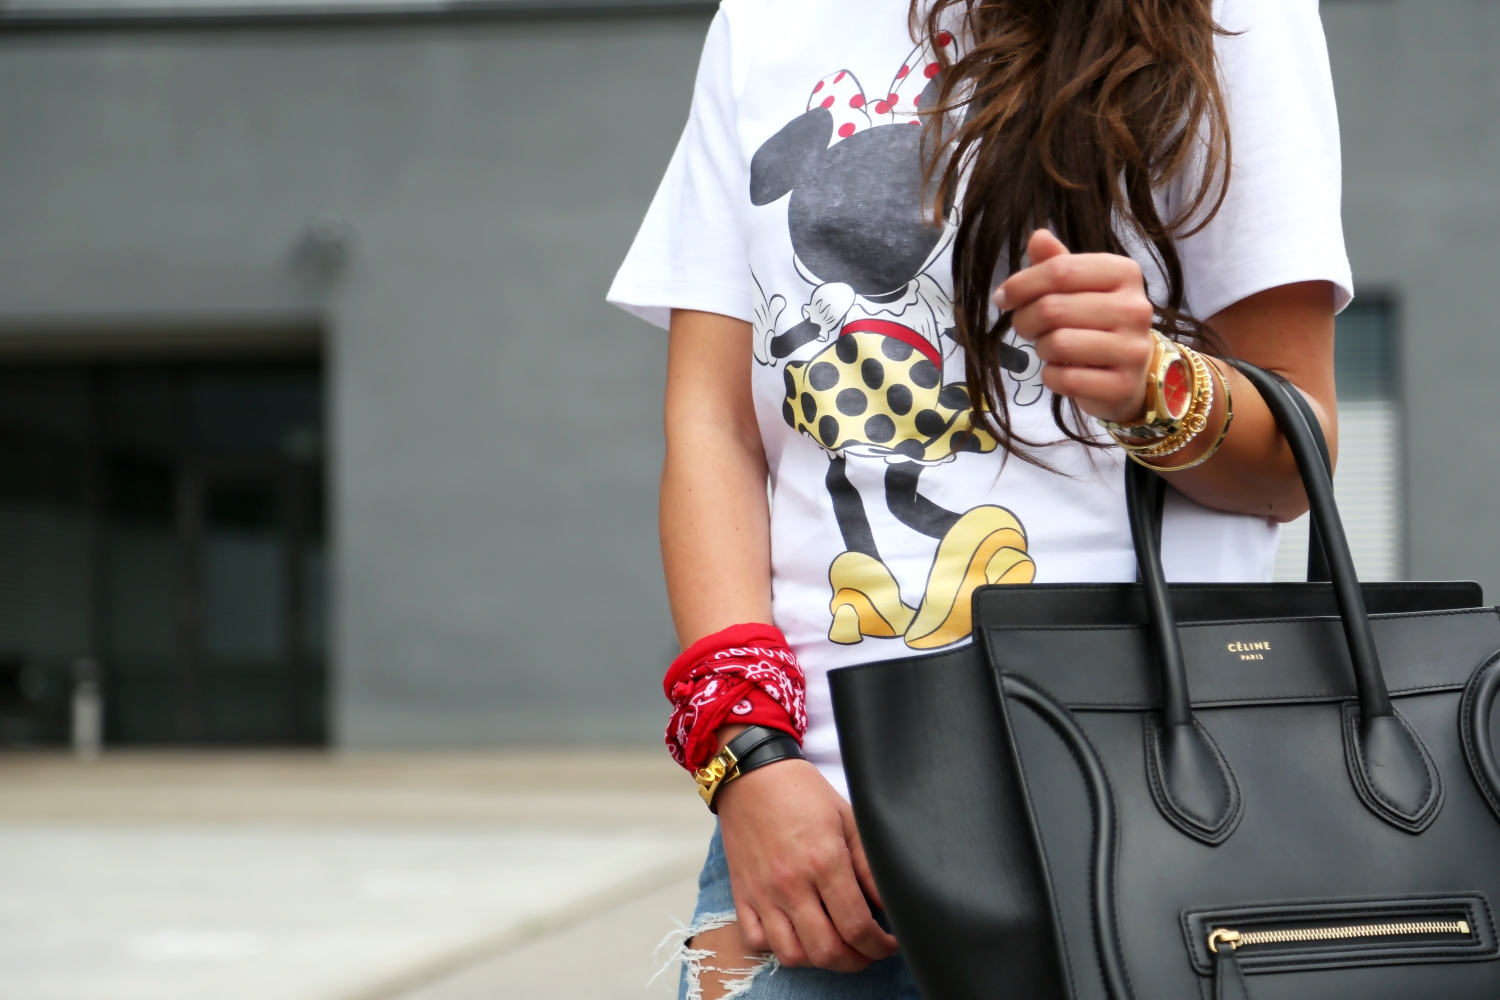 outfit-minnie-mouse-shirt-disney-victoria-beckham-celine-luggage